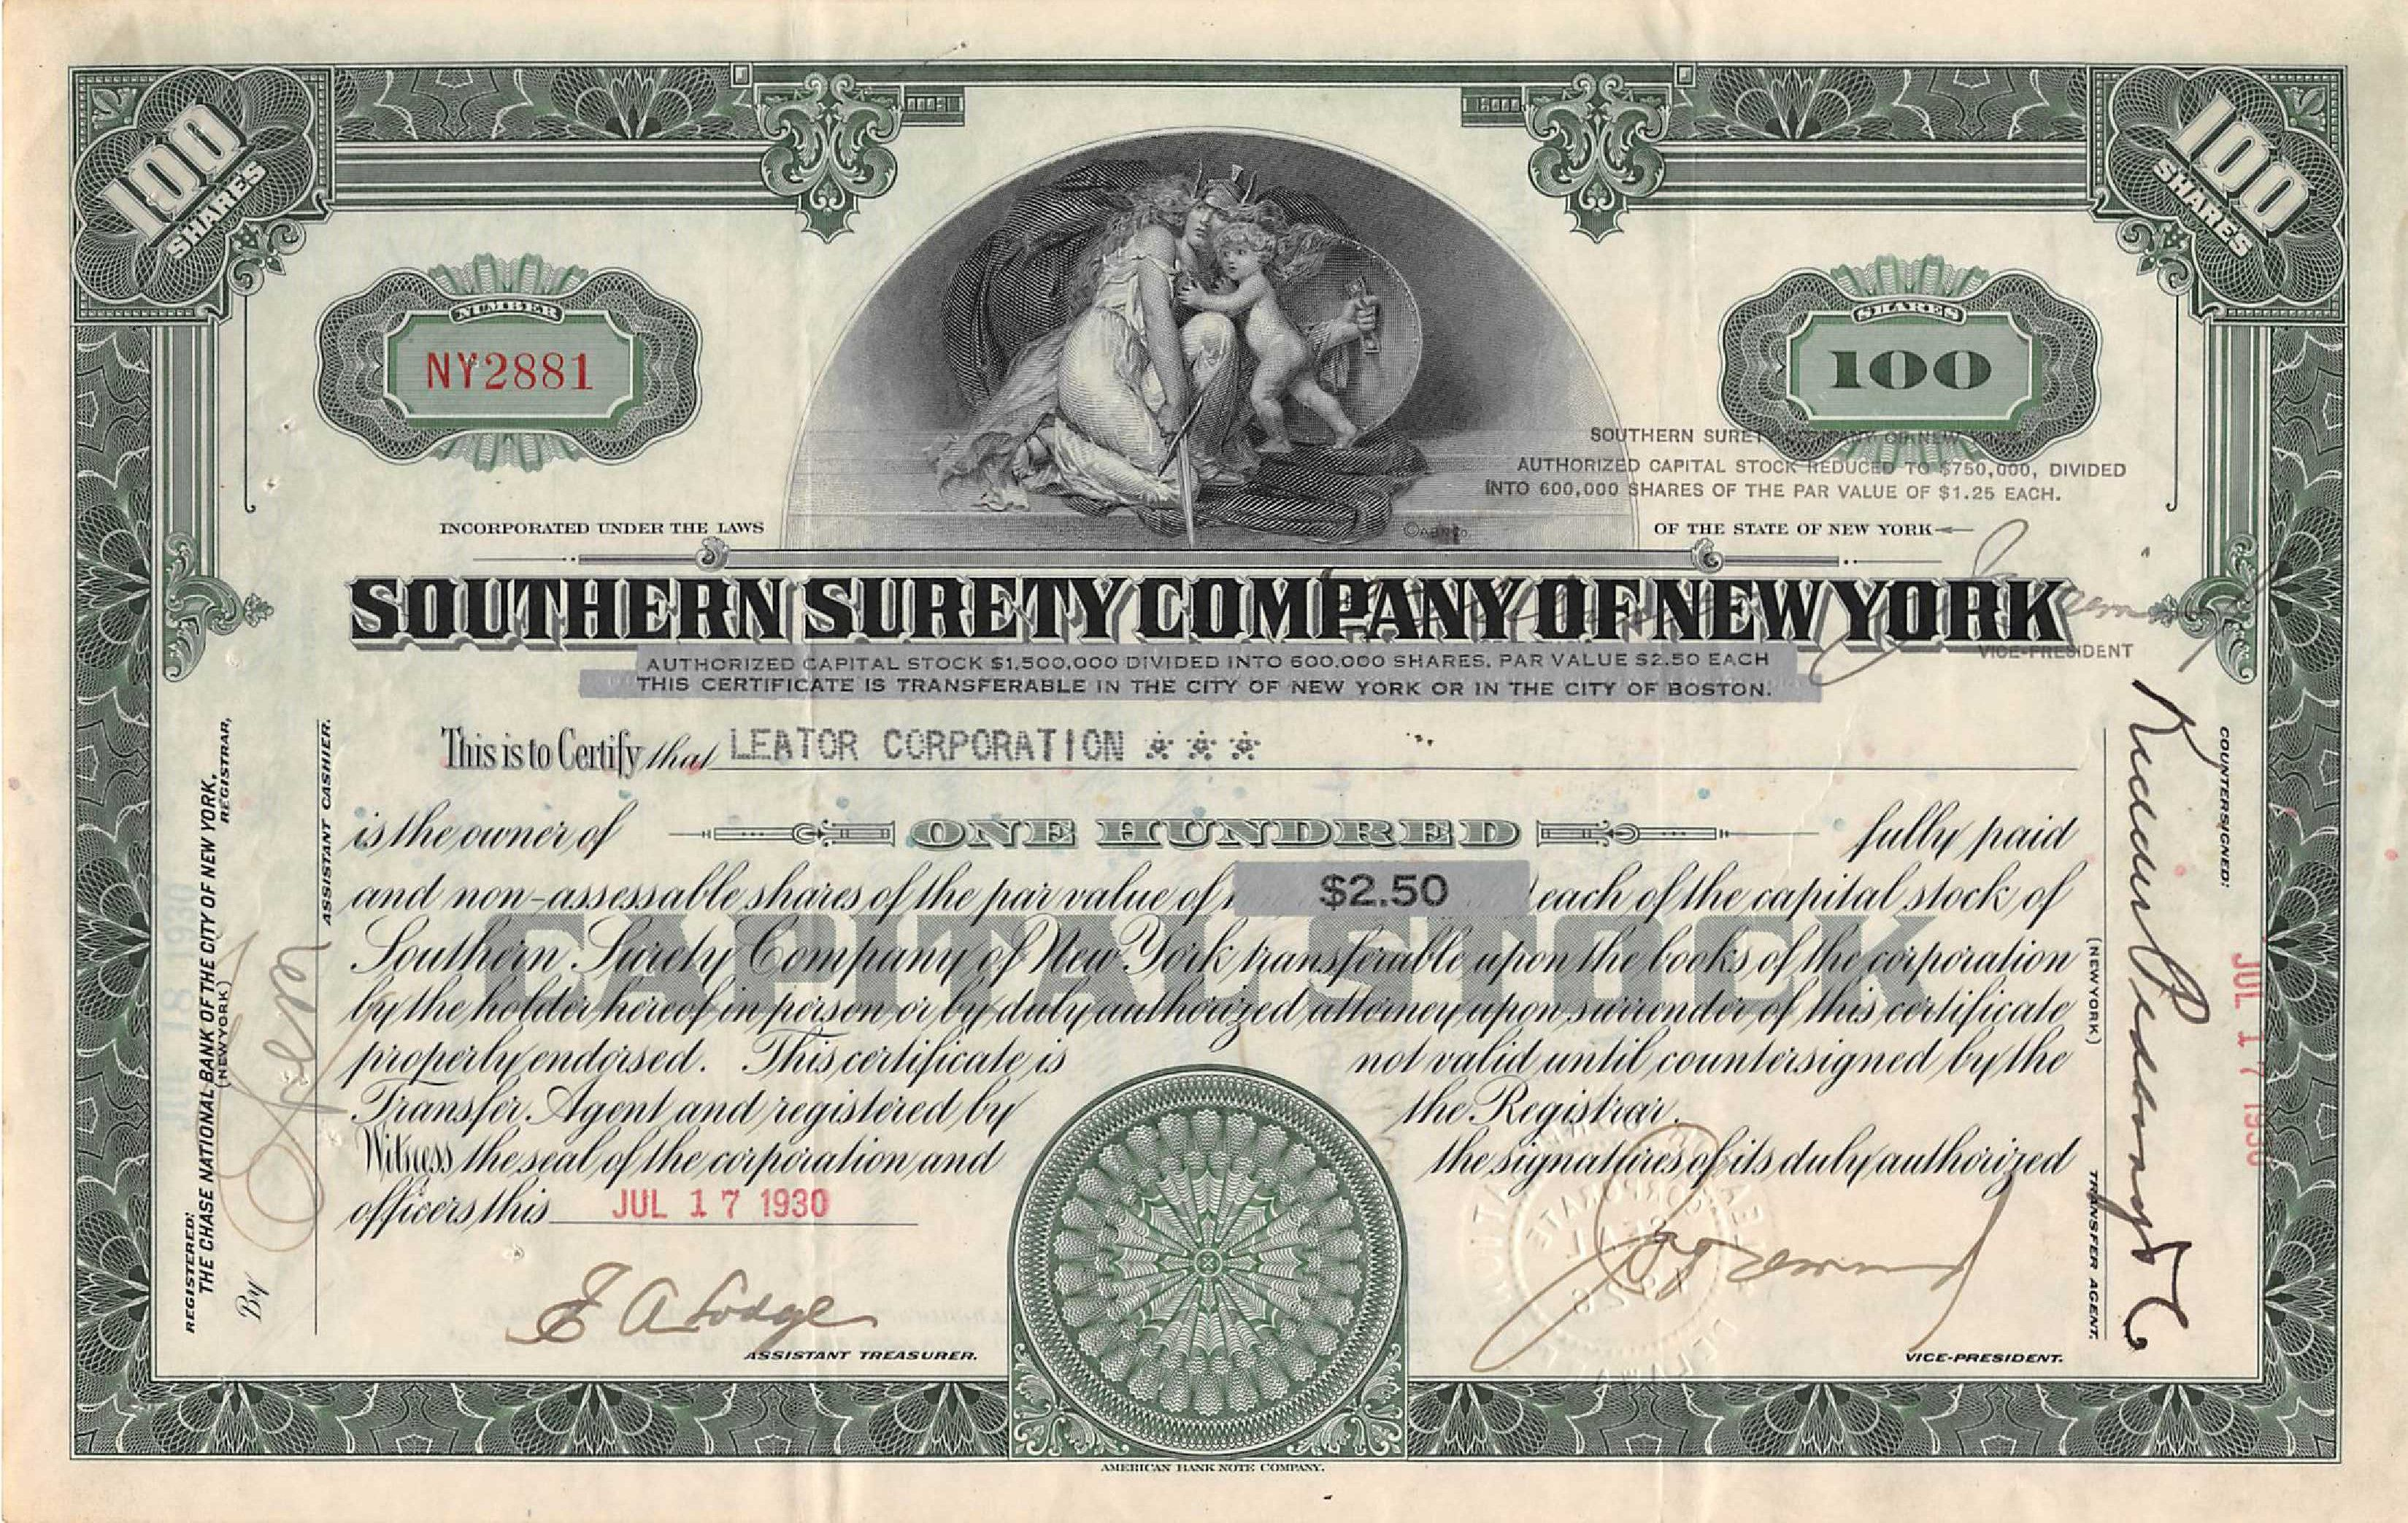 If you have lost a stock or bond certificate, money order